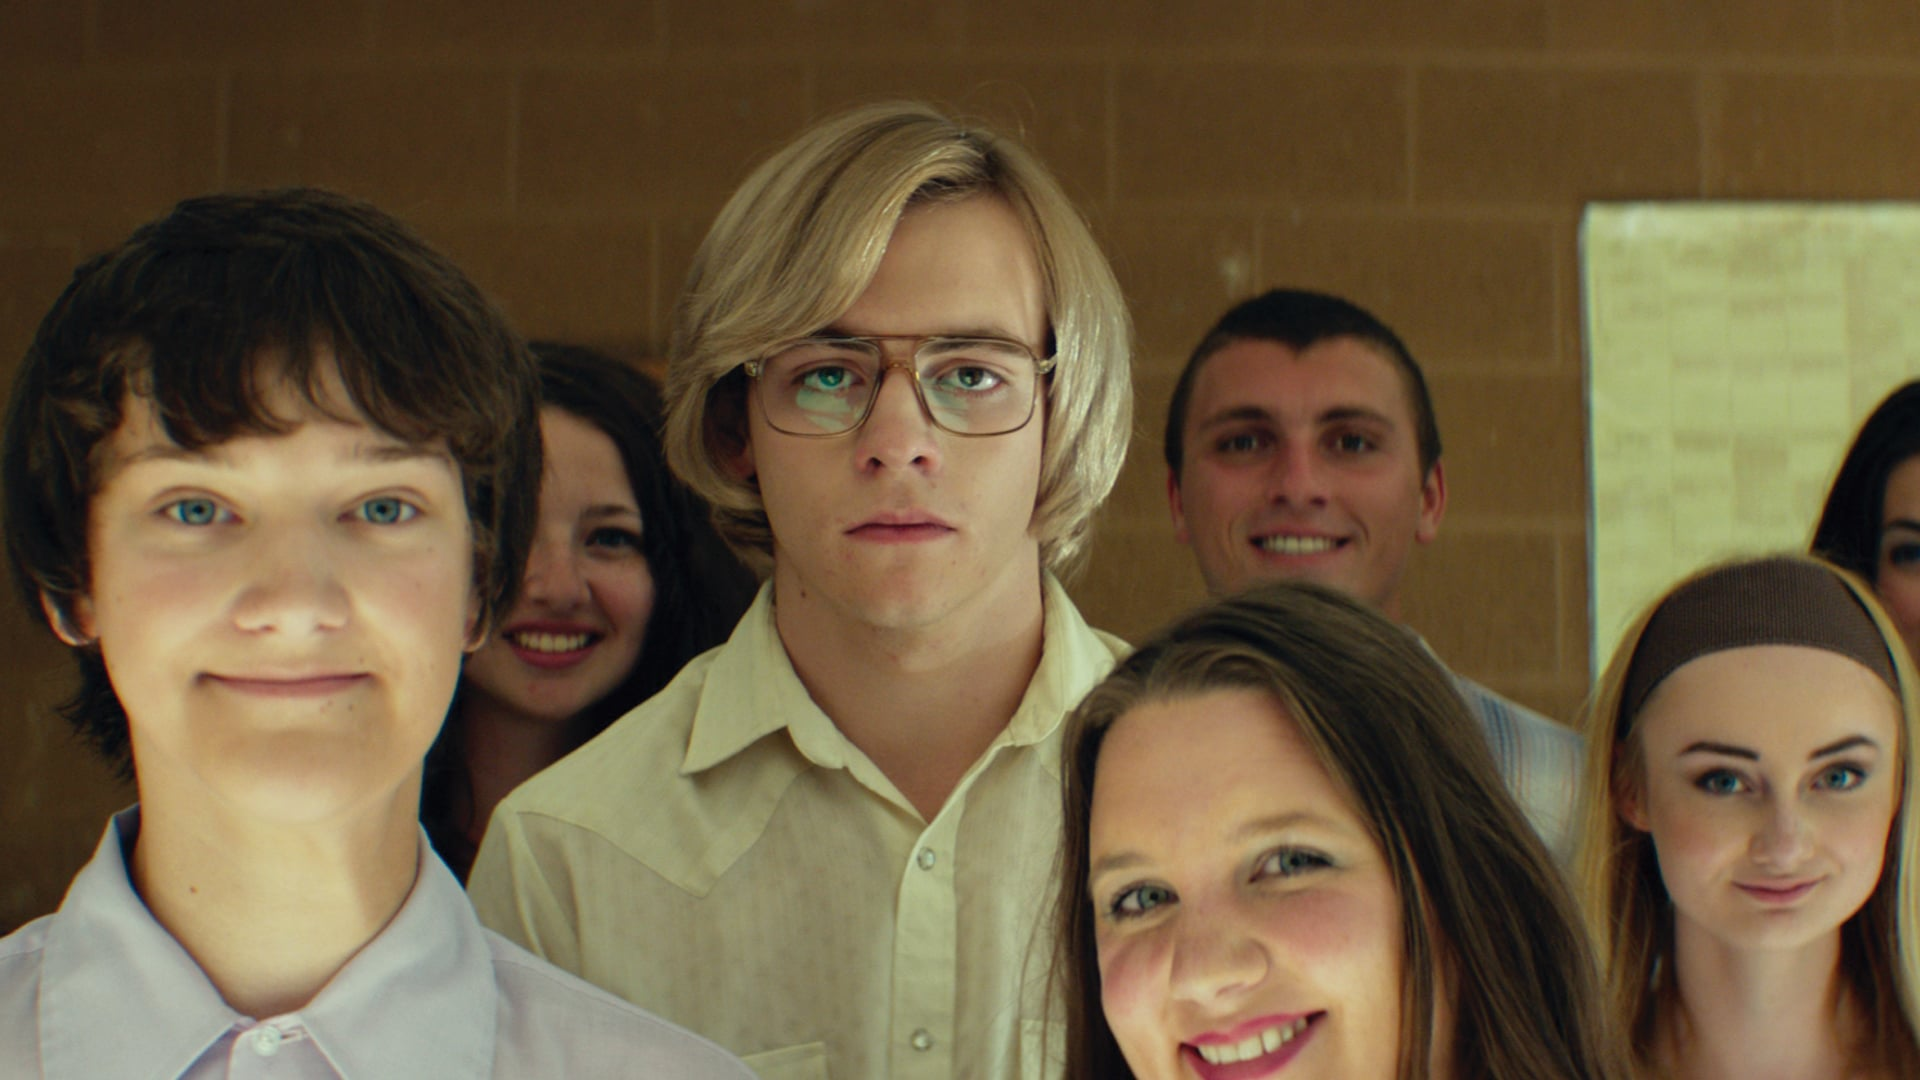 Review – My Friend Dahmer (2018)